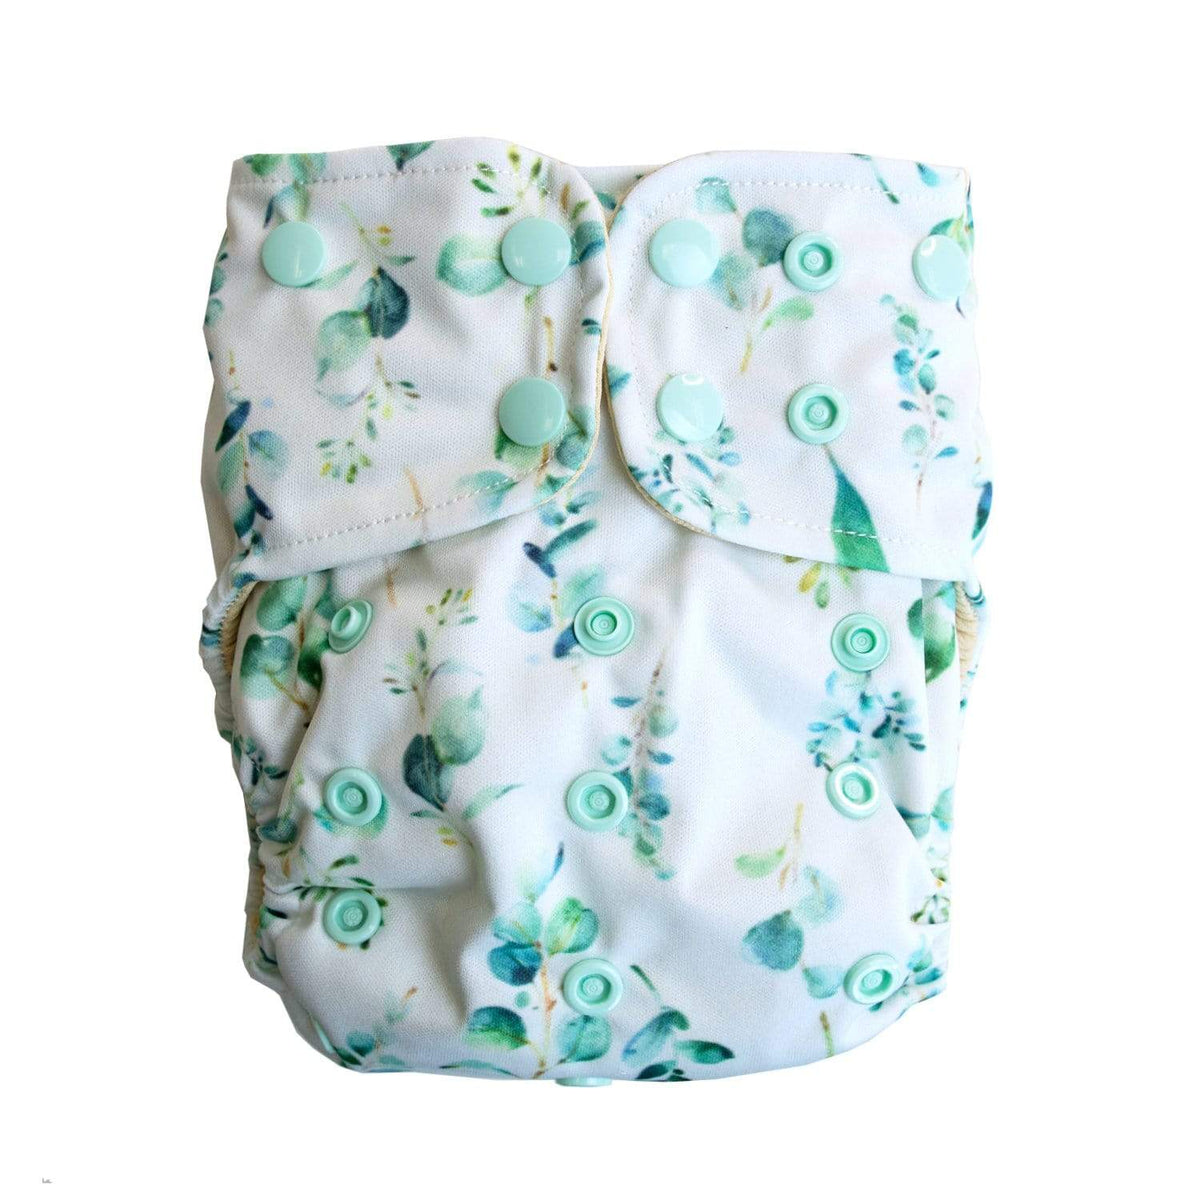 Lighthouse Kid's Company Signature All In One Diaper - Eucalyptus